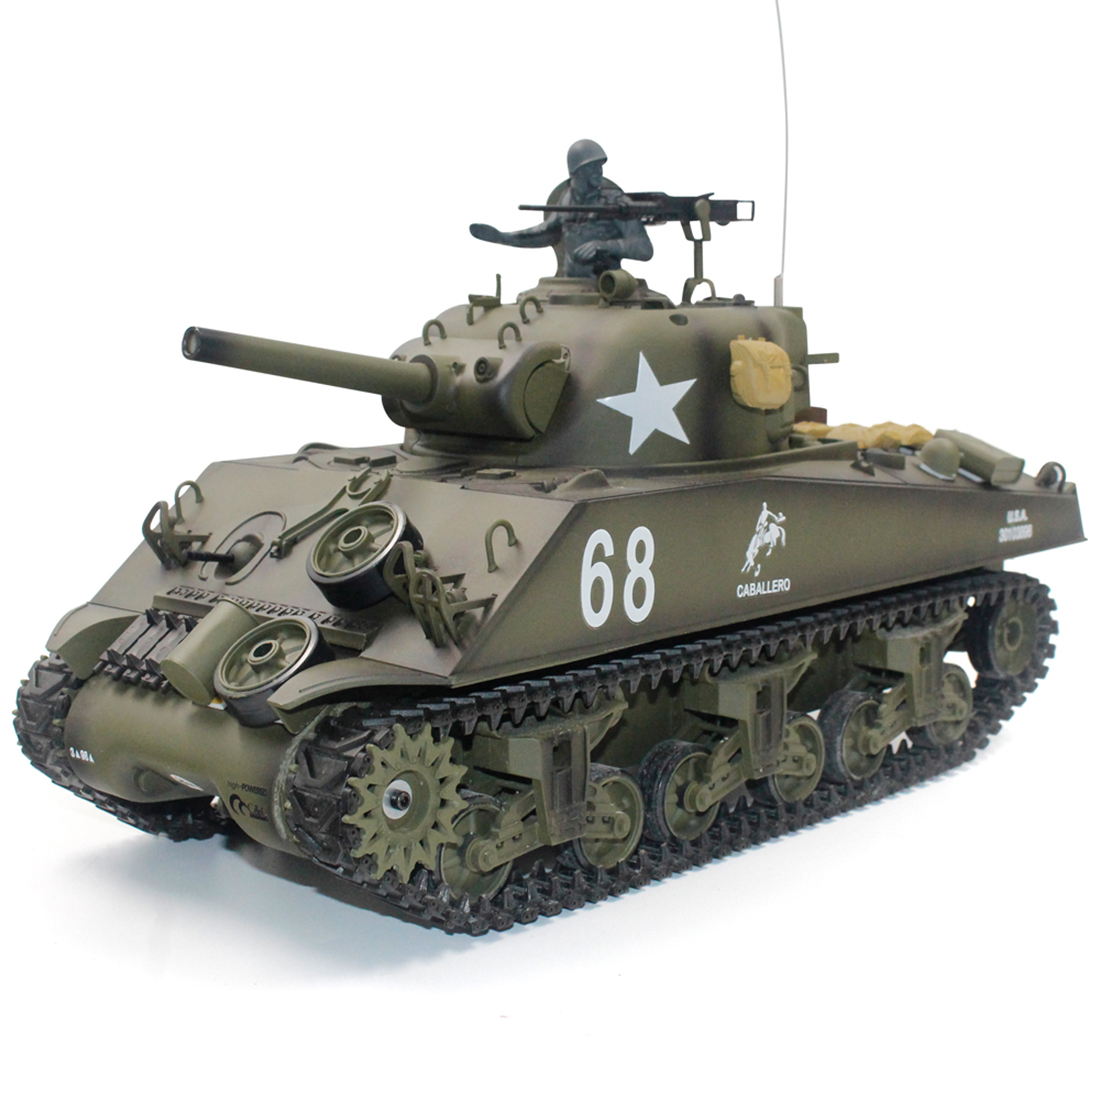 Toys Tank-Model RC Henglong Simulation 1:16-America-Scherman M4A3 for Children Educational-Toy